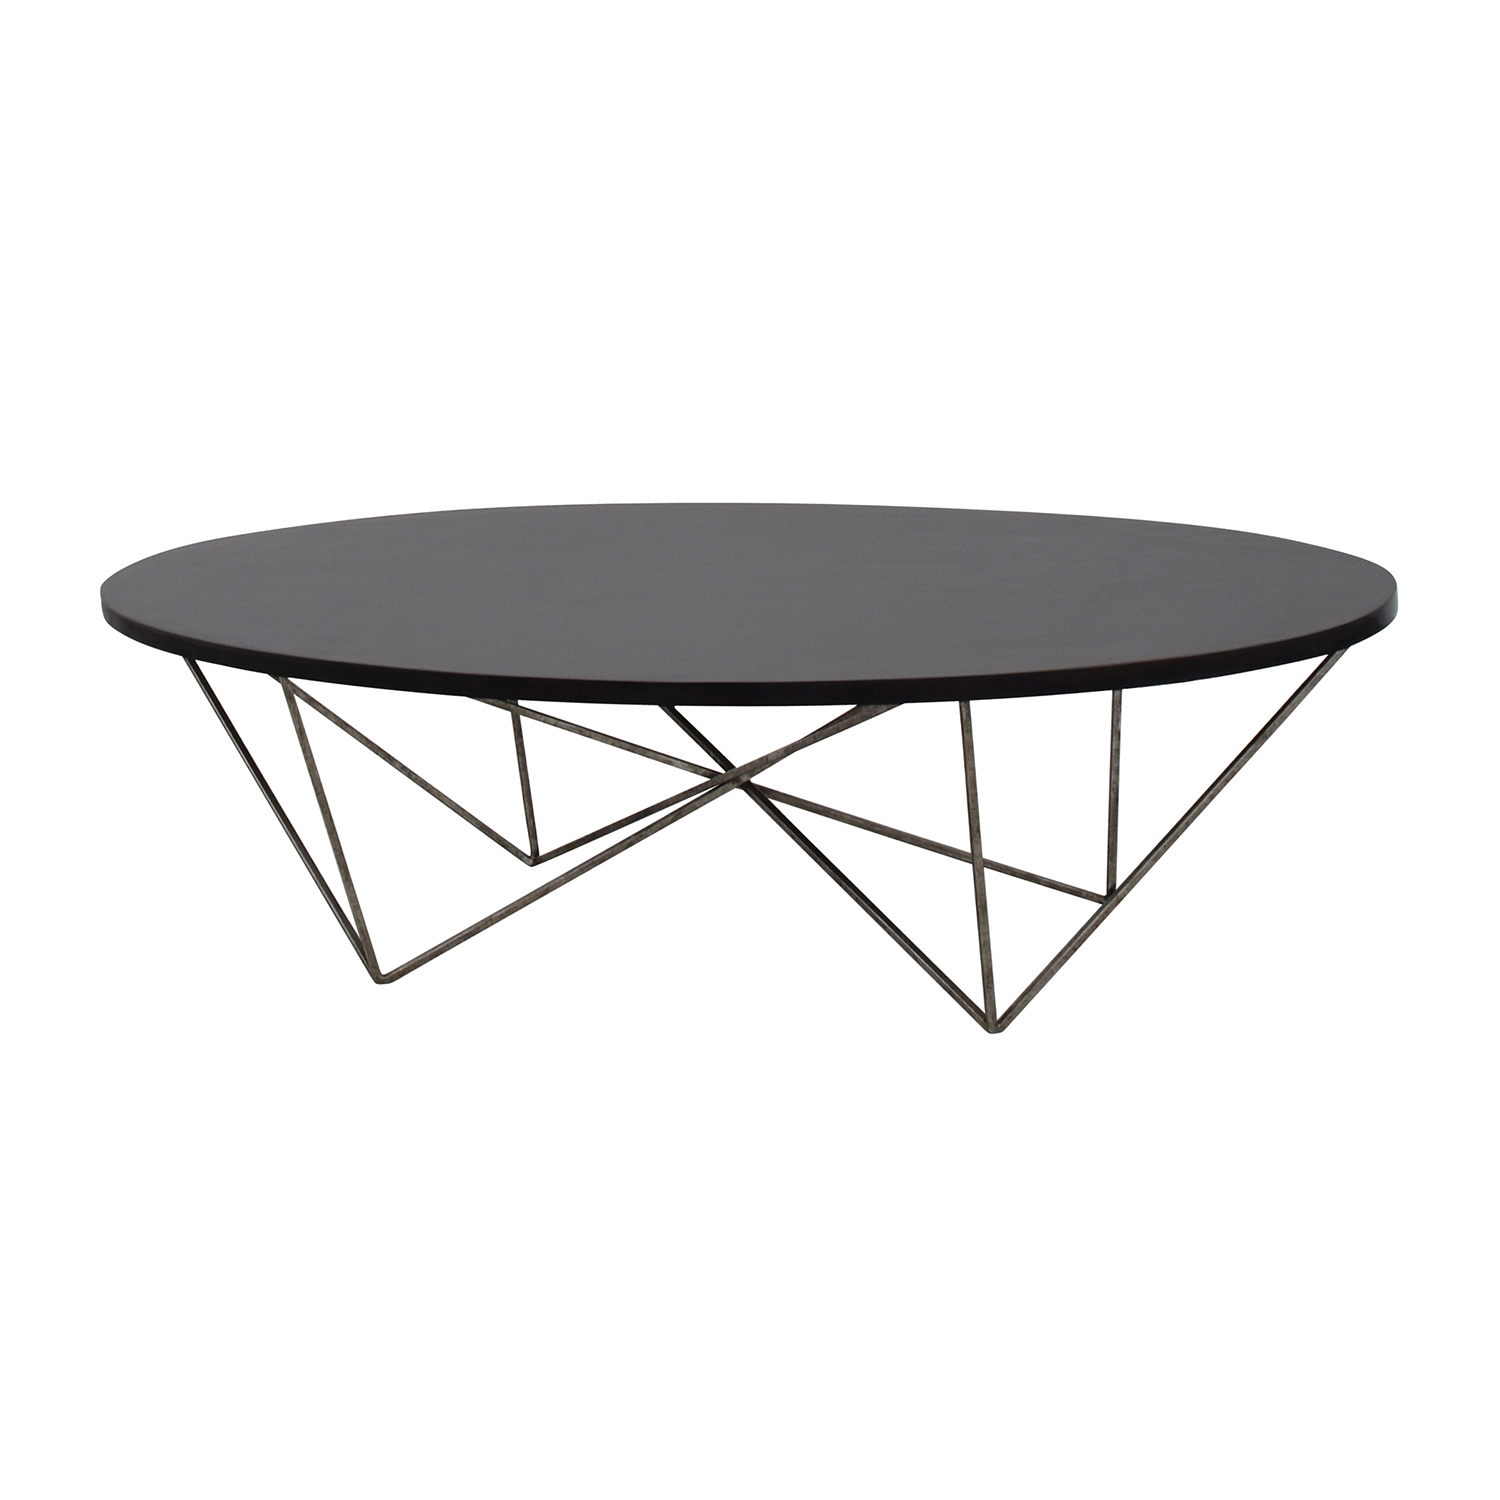 oly studio oly studio george cocktail table price - Oly Furniture Sale